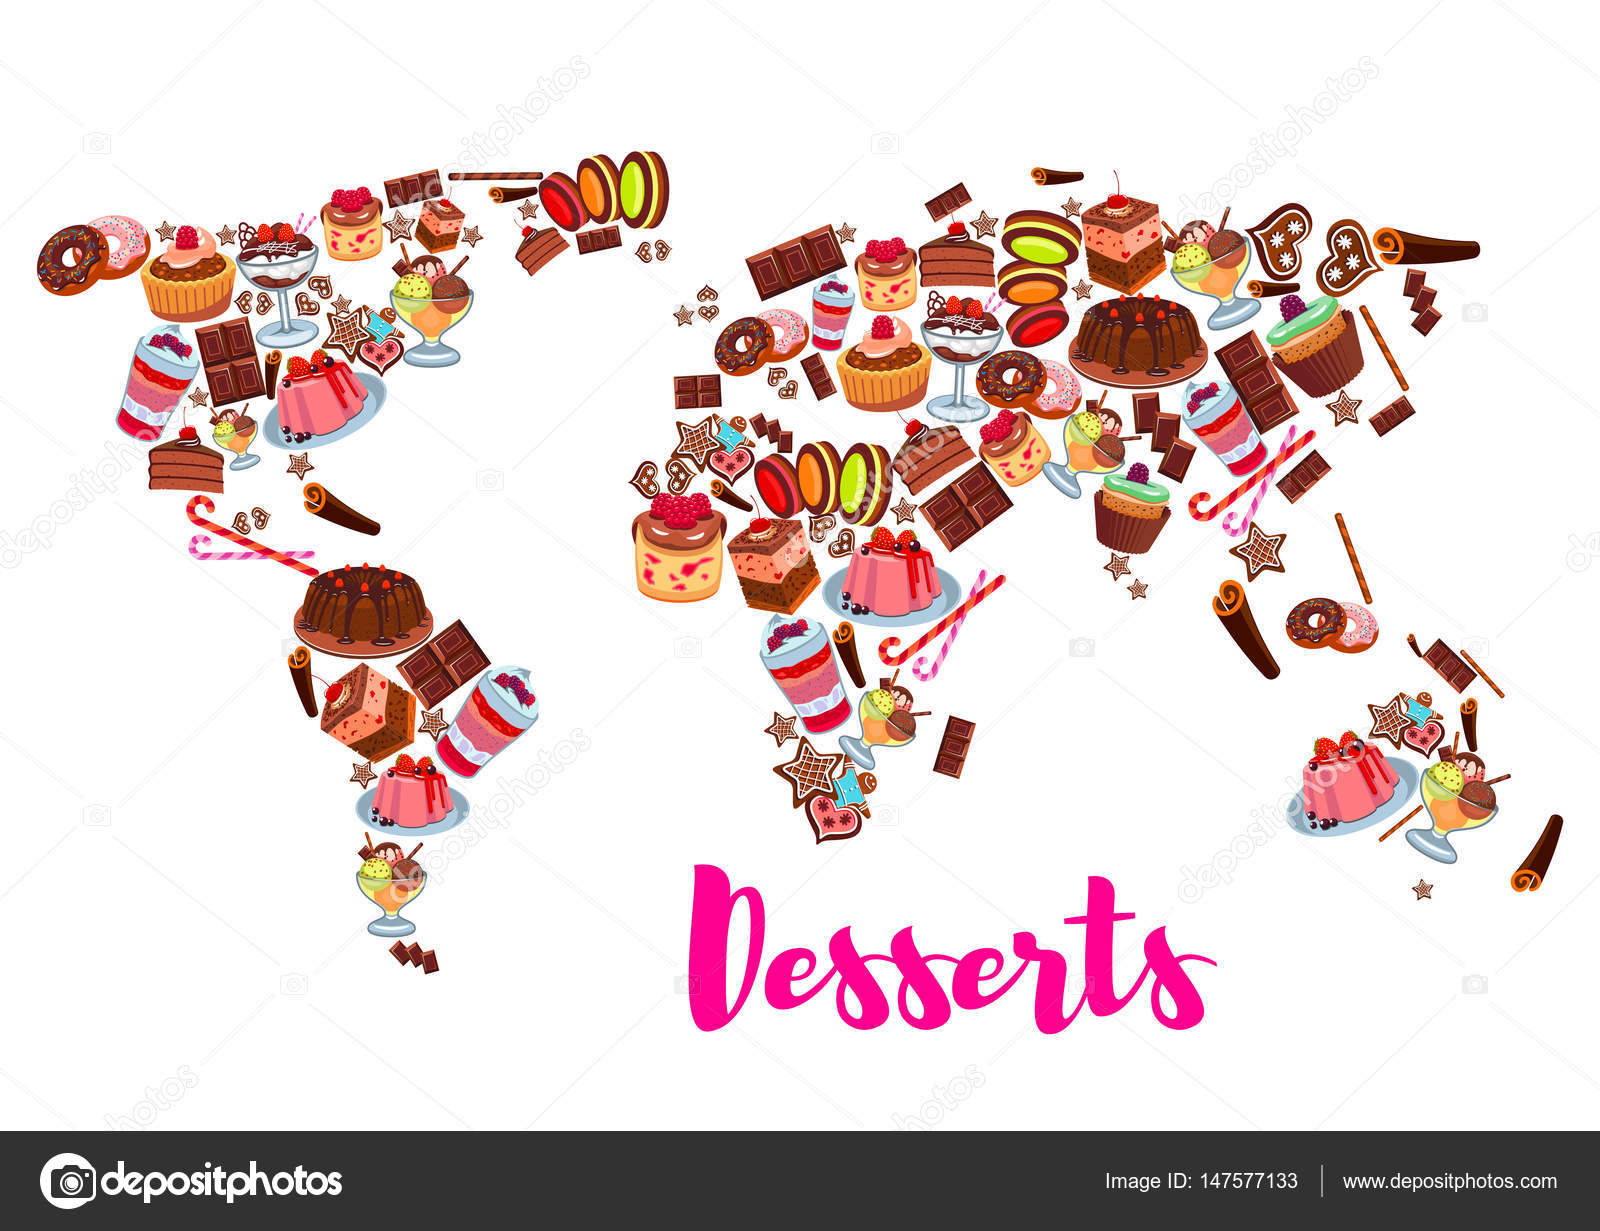 World map of cake, cupcake, donut, candy desserts — Stock ... on mint world map, britannia world map, palm world map, coins world map, lego world map, cheese world map, gourmet world map, spooky world map, city lights world map, bunny world map, plants world map, seasonal world map, capri world map, meat world map, bamboo world map, abstract world map, apple world map, water drop world map, new years world map, beans world map,